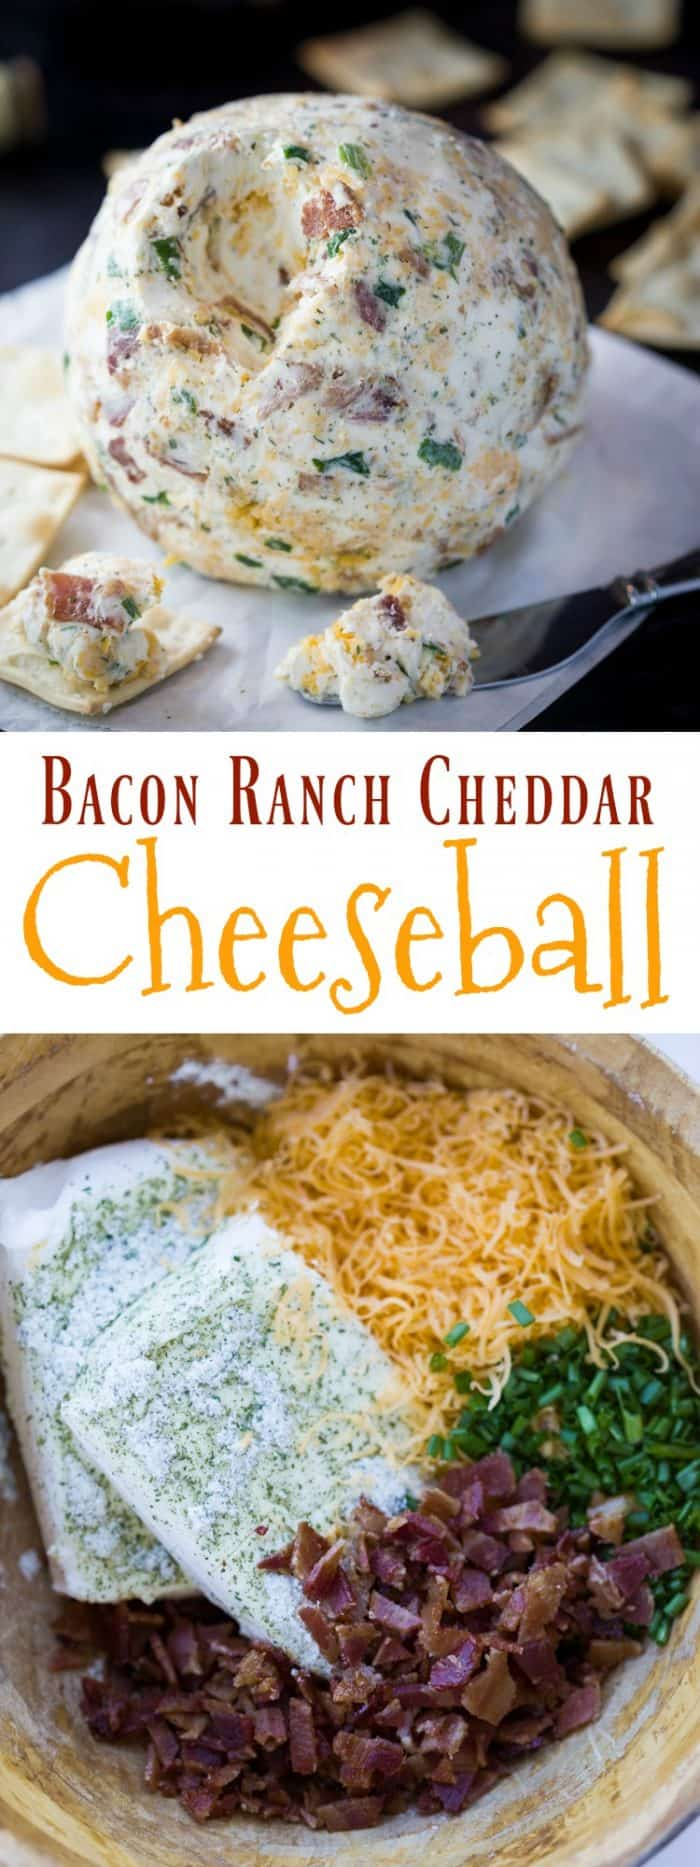 This cheese-ball as a perfect blend of flavors including ranch, crispy bacon bits, 2 kinds of cheese, and chives. A perfectly easy and delicious appetizer! | The Cozy Cook | #cheese #fingerfood #appetizer #bacon #cheddar #cheeseball